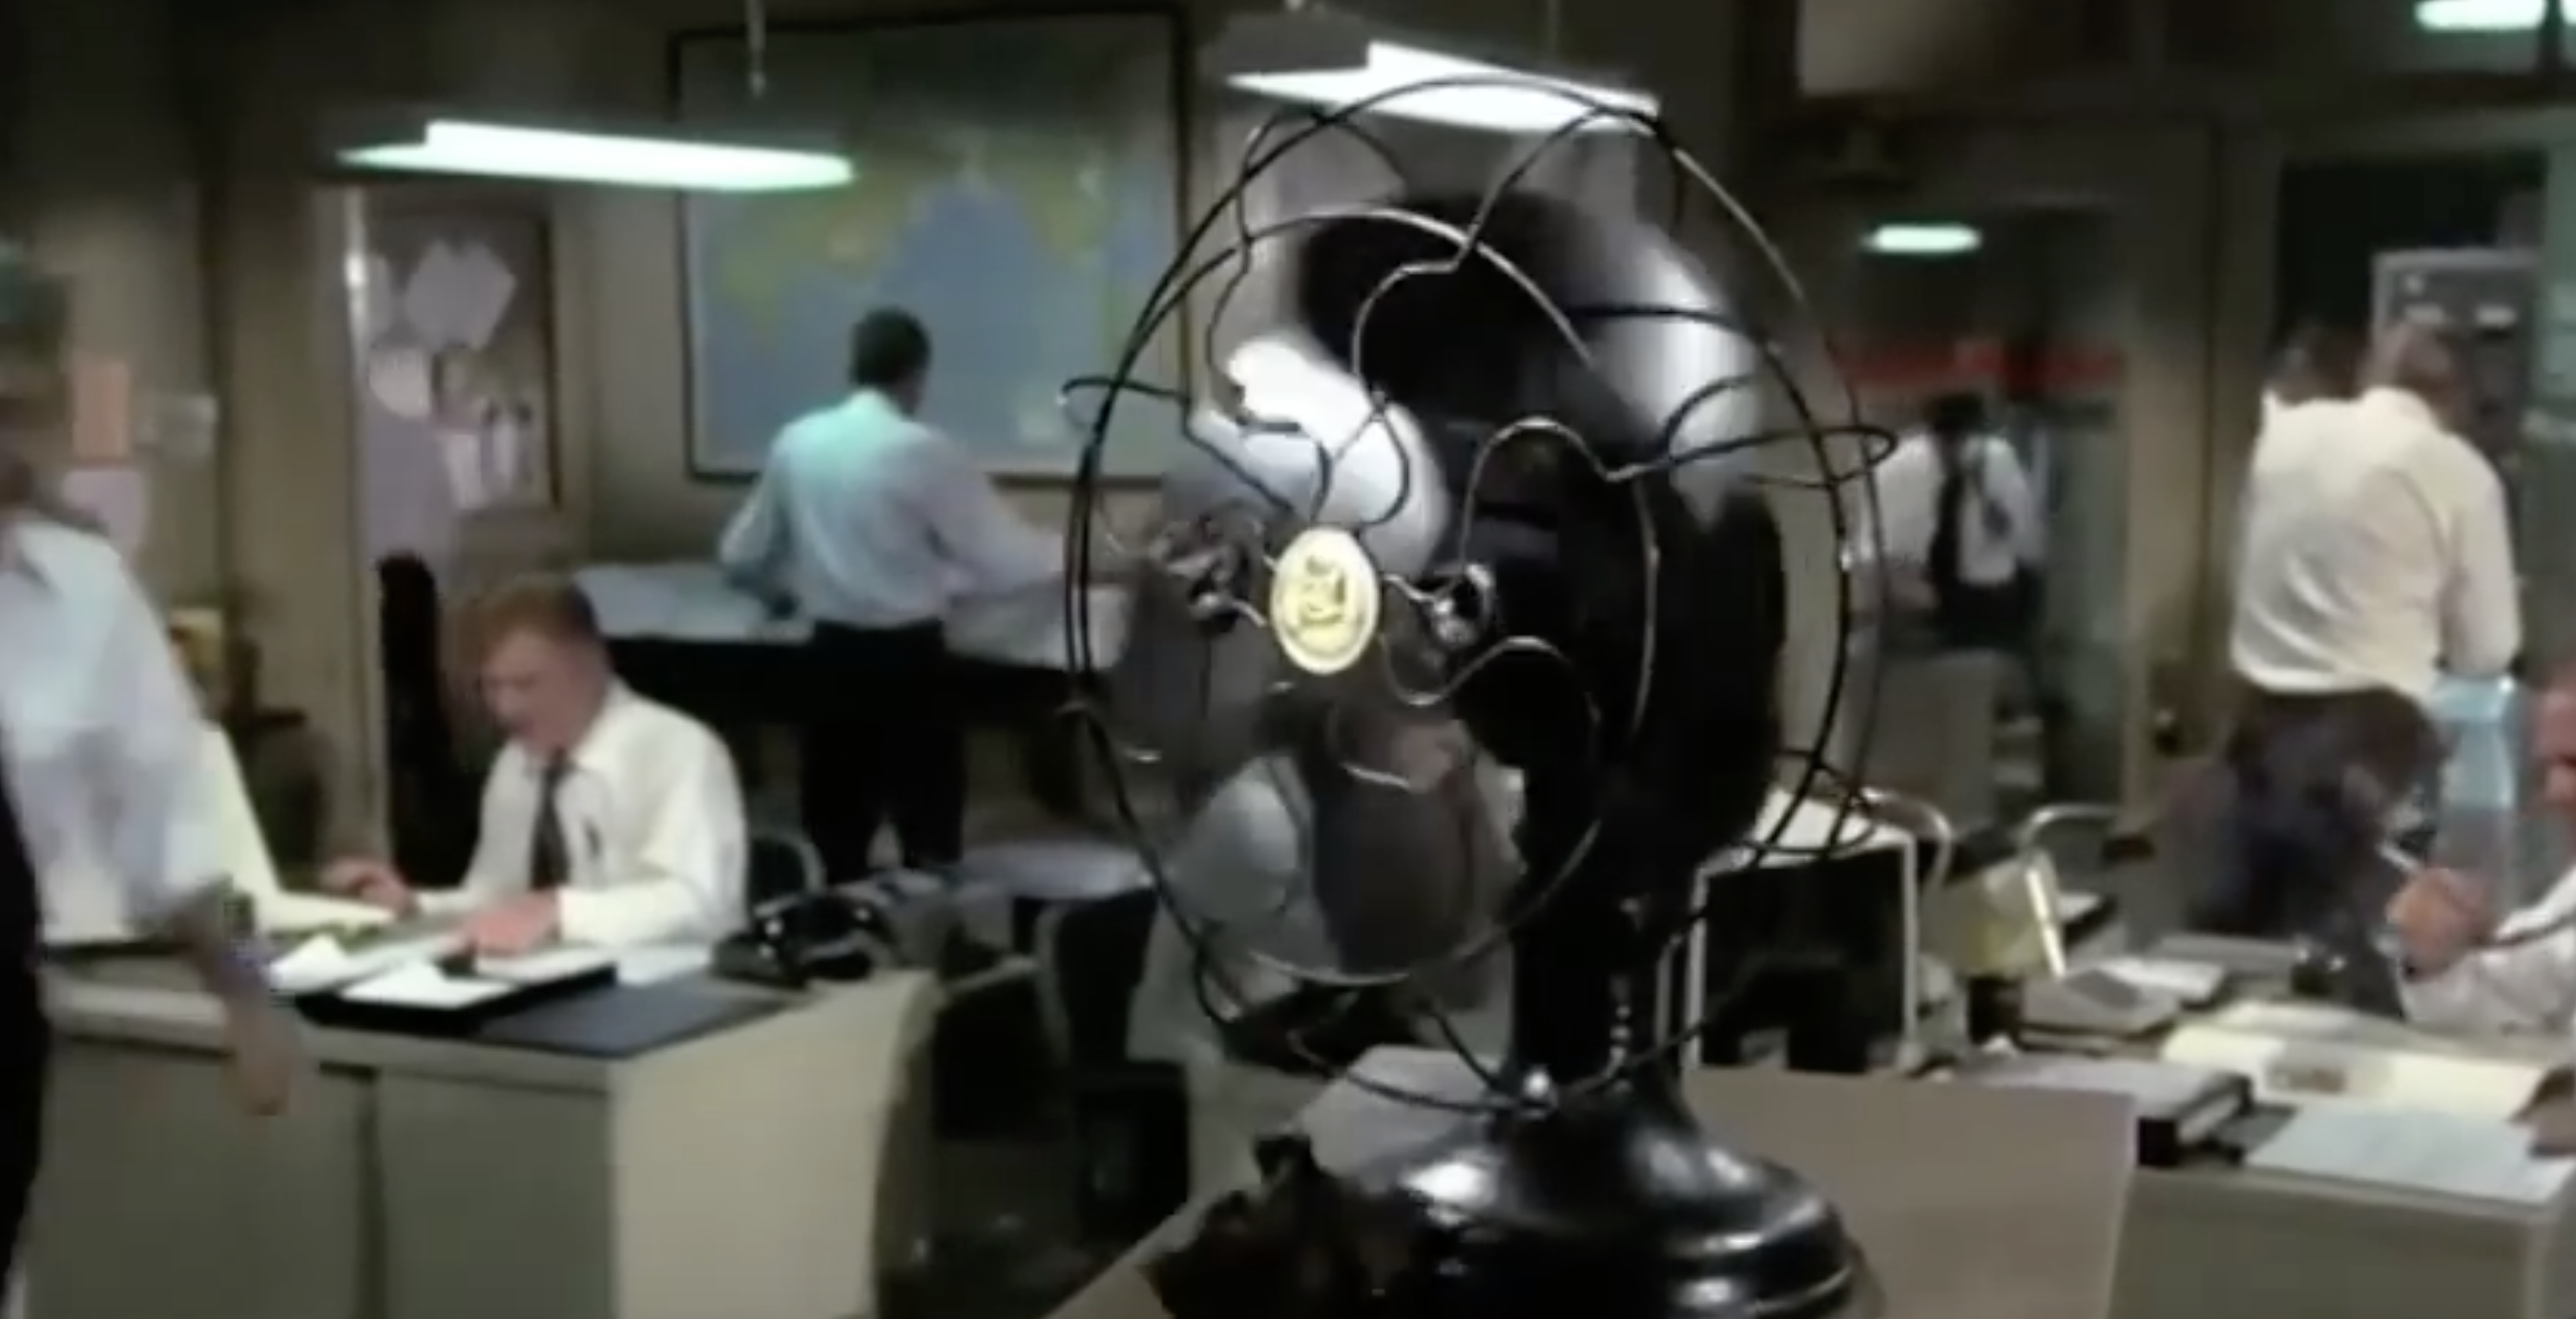 fan in office building